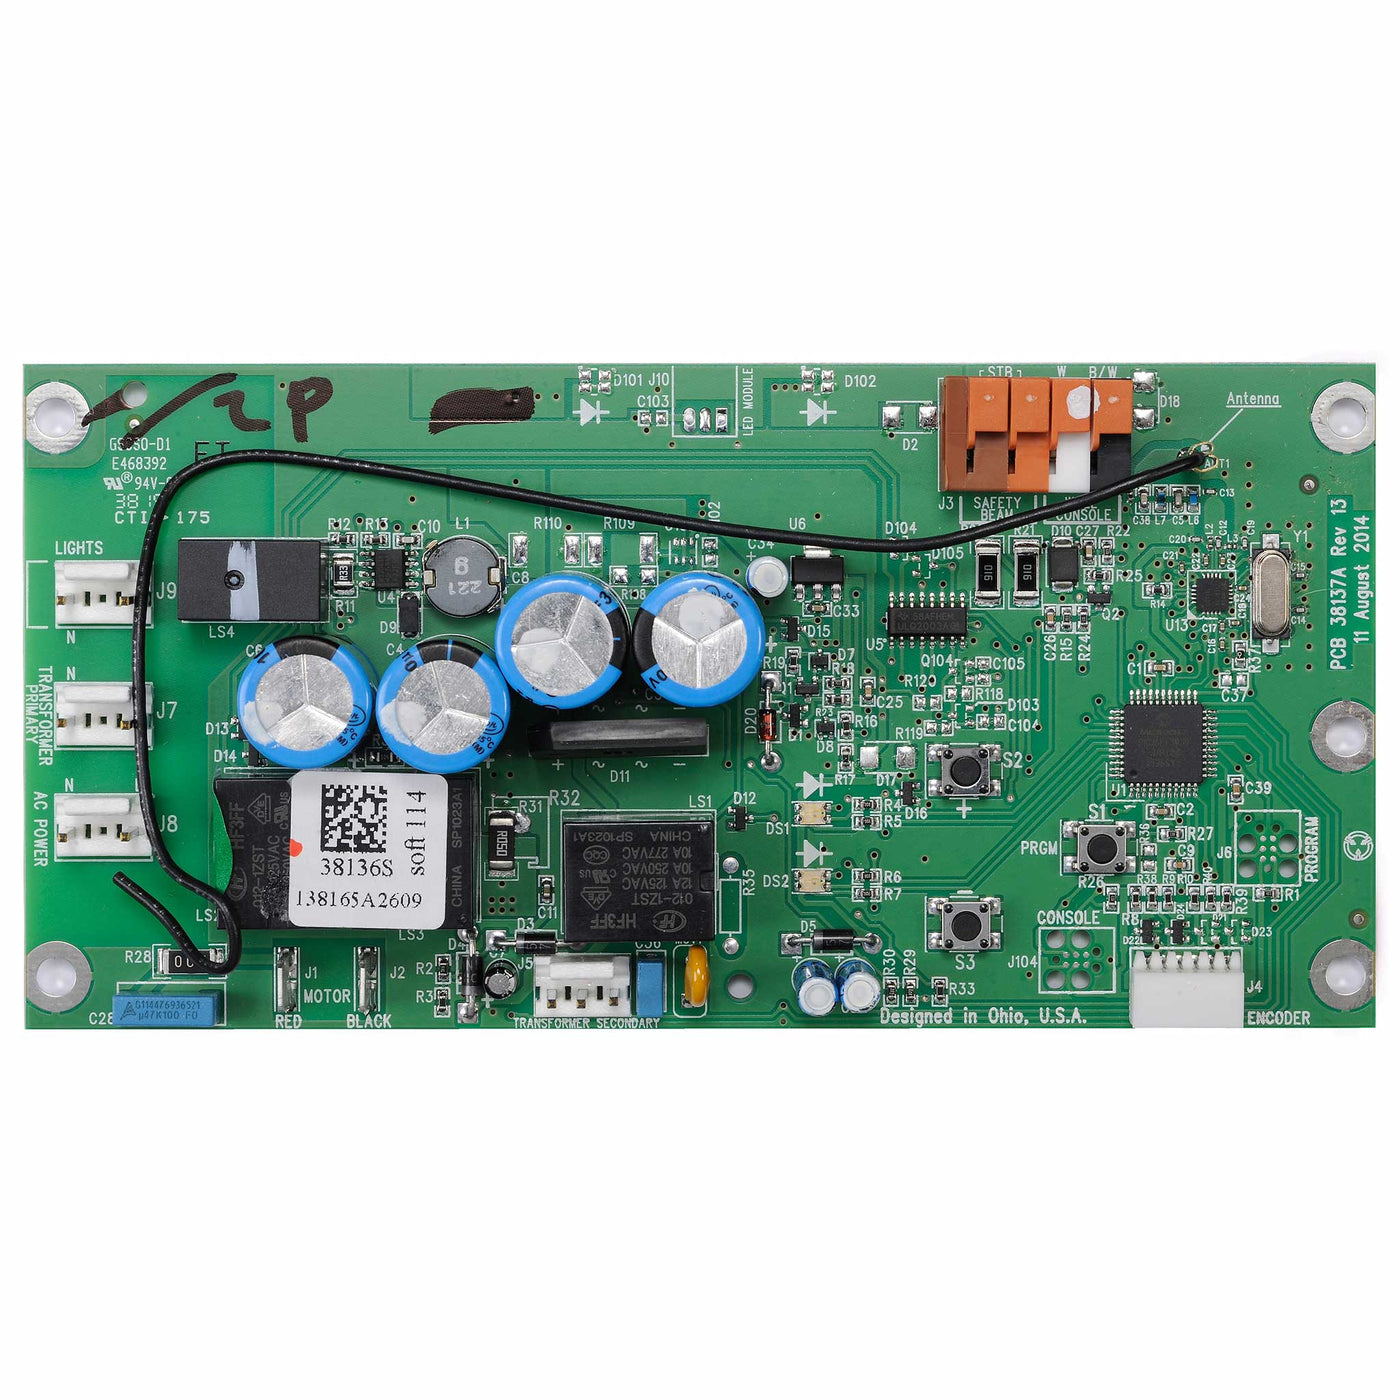 Genie Circuit Board Assembly 39340rs The Company Compatible With Garage Door Opener Models 2035 2036